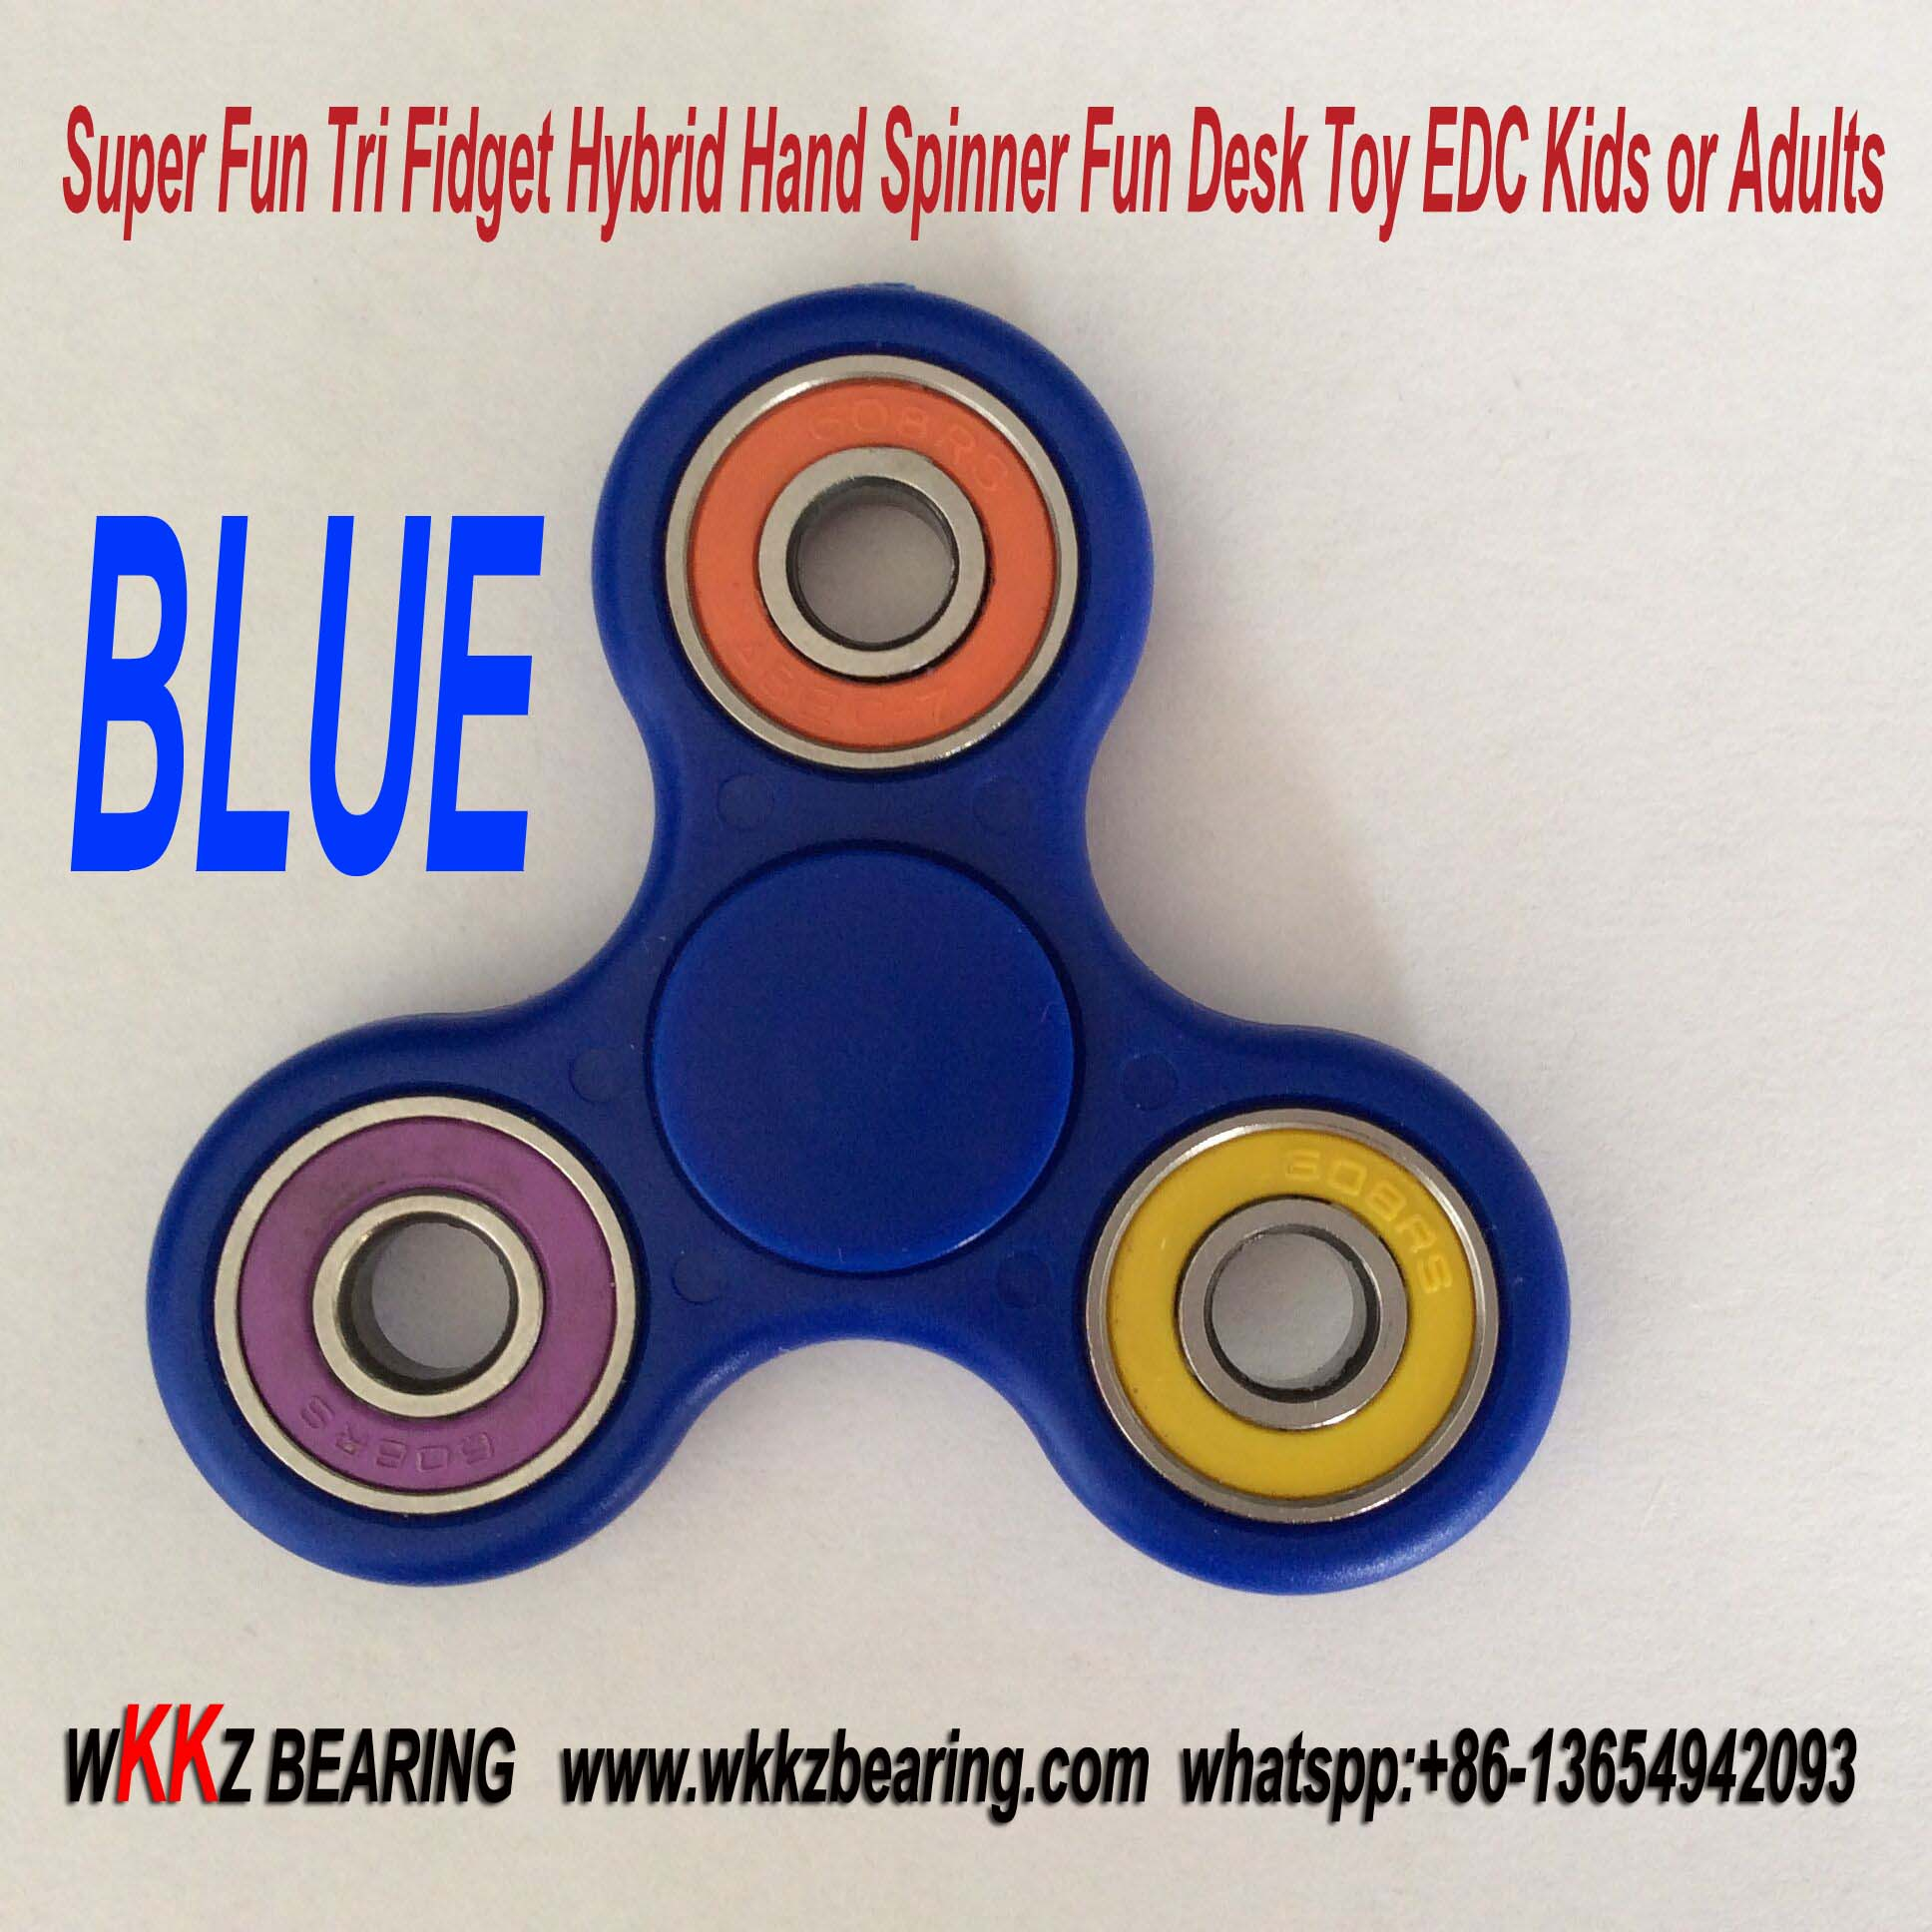 Super Fun Tri Fidget Hybrid Hand Spinner Fun Desk Toy EDC Kids or Adults